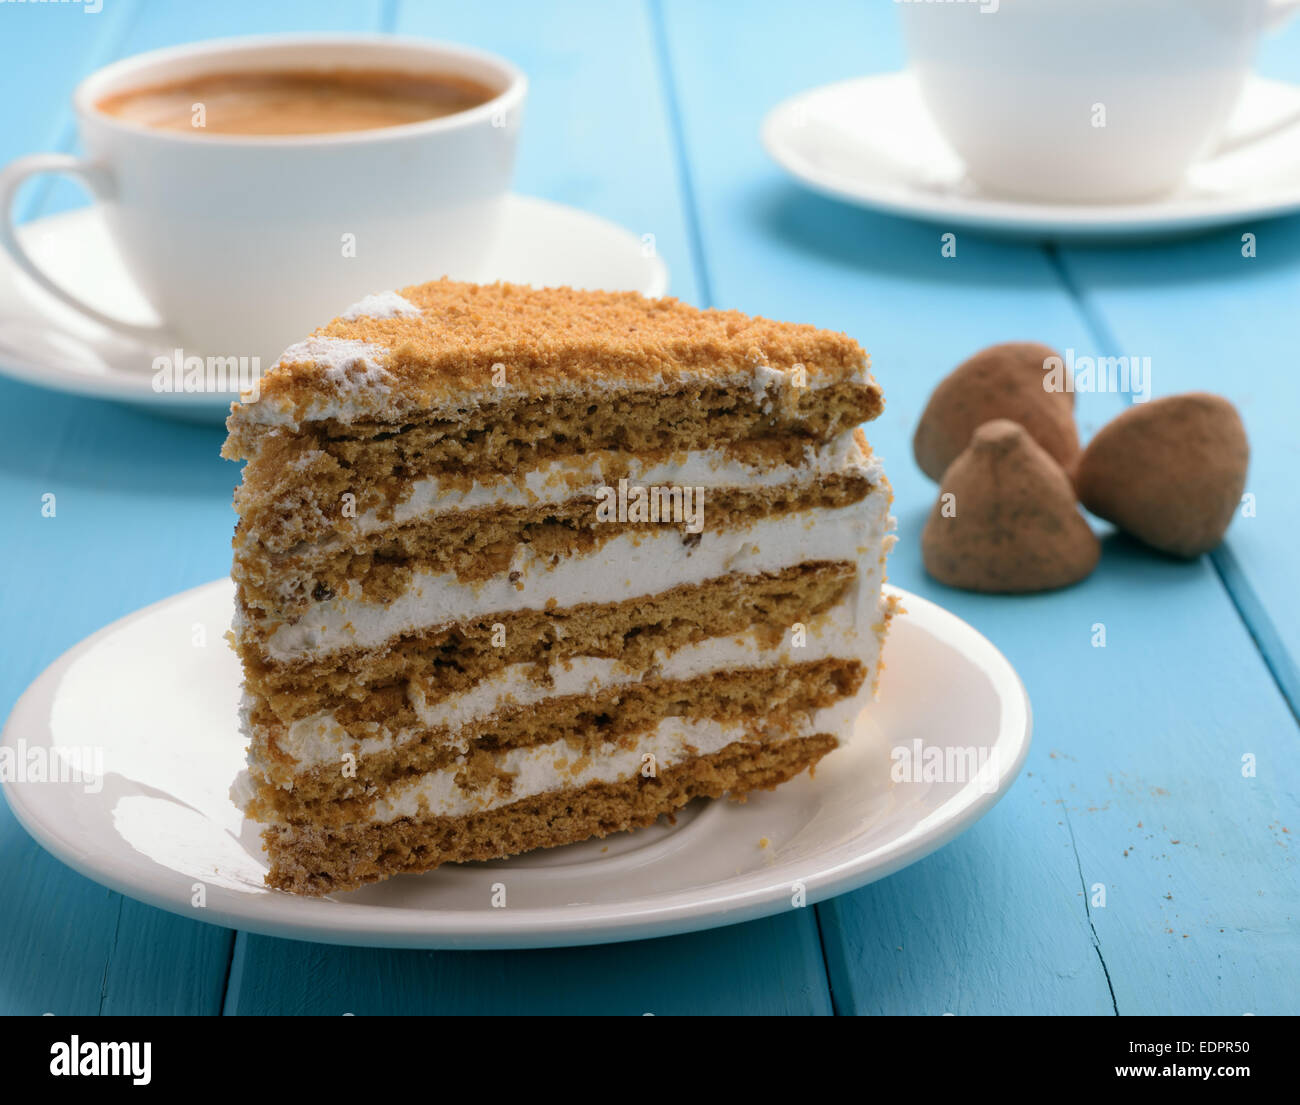 piece of cake on blue wooden table in the background cup of coffee and chocolate truffles - Stock Image